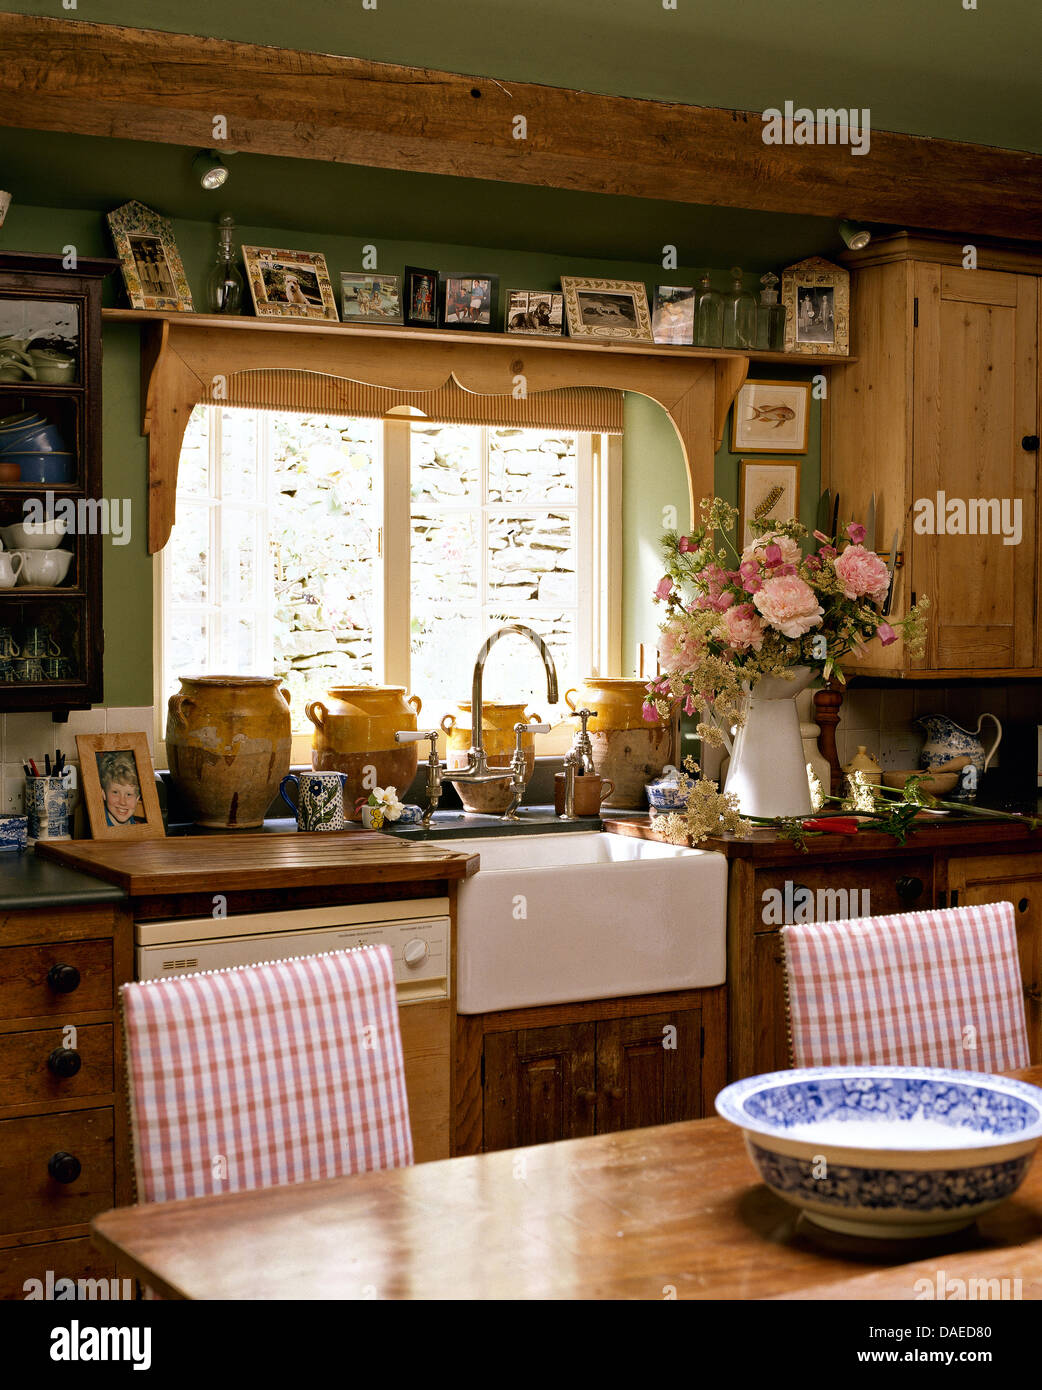 Photographs on shelf above window and Belfast sink in cottage kitchen with  checked upholstered chairs at simple wood table